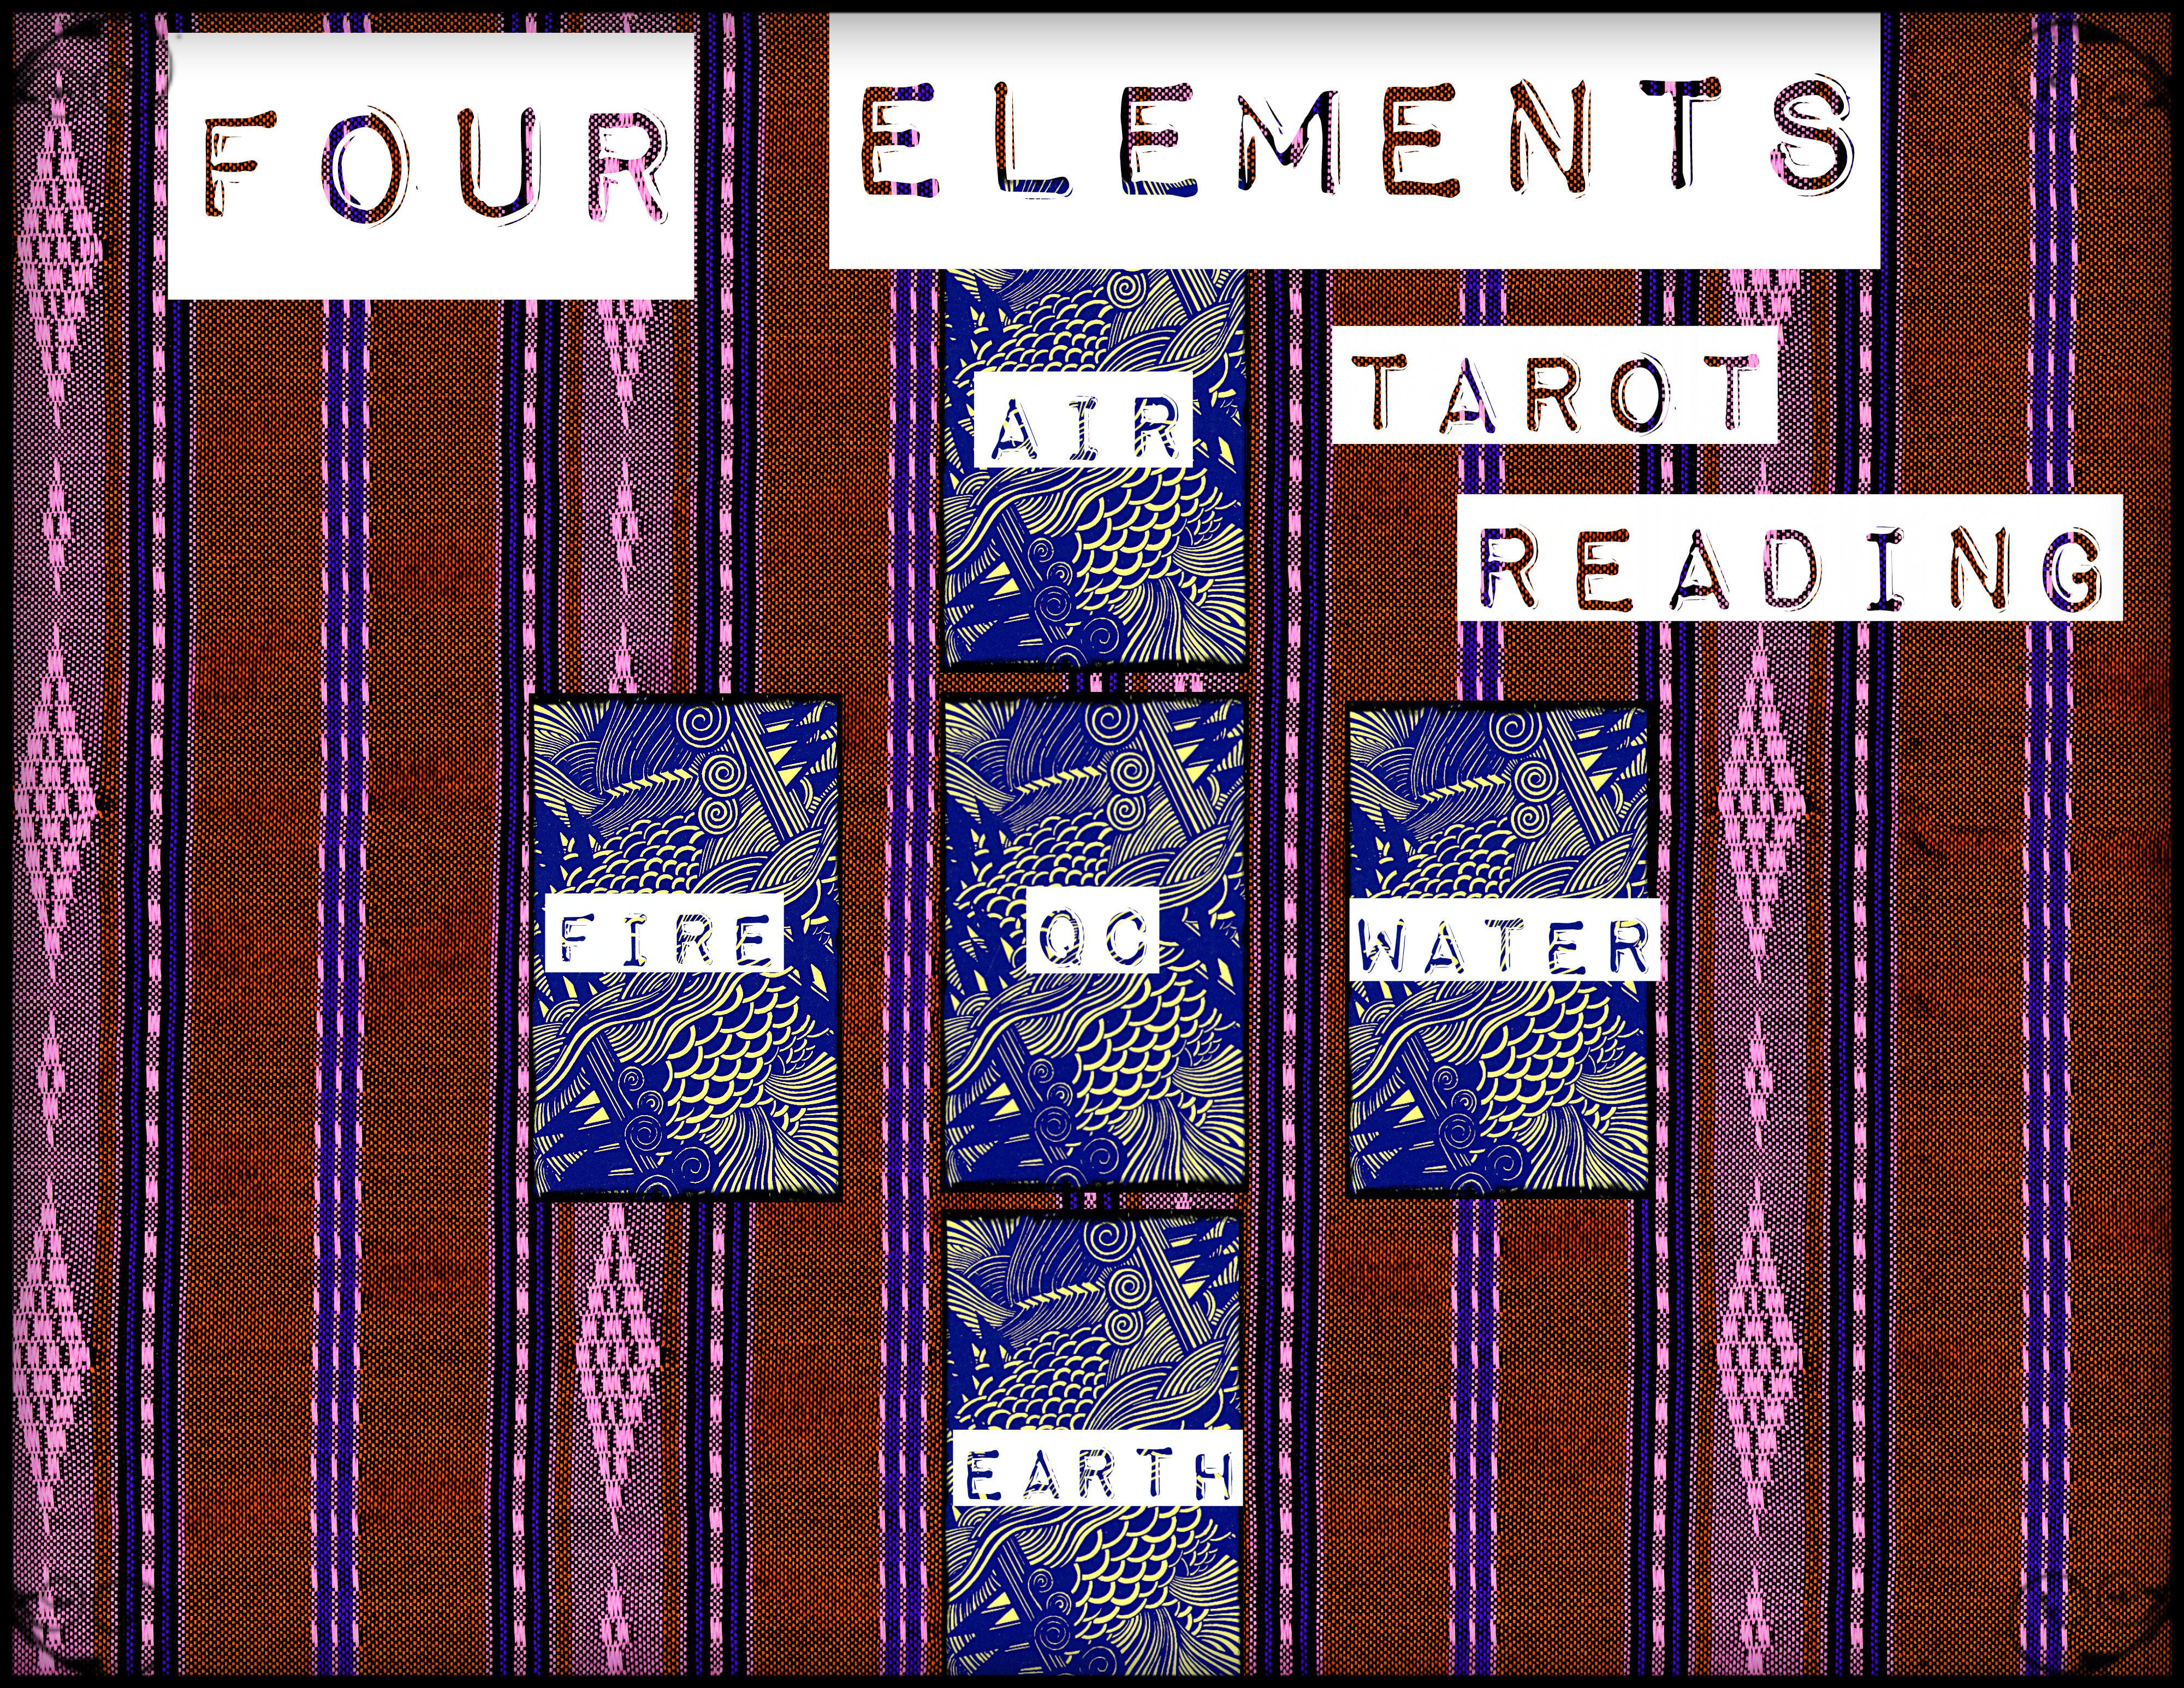 Earth elements tarot ask 1 free psychic question and get